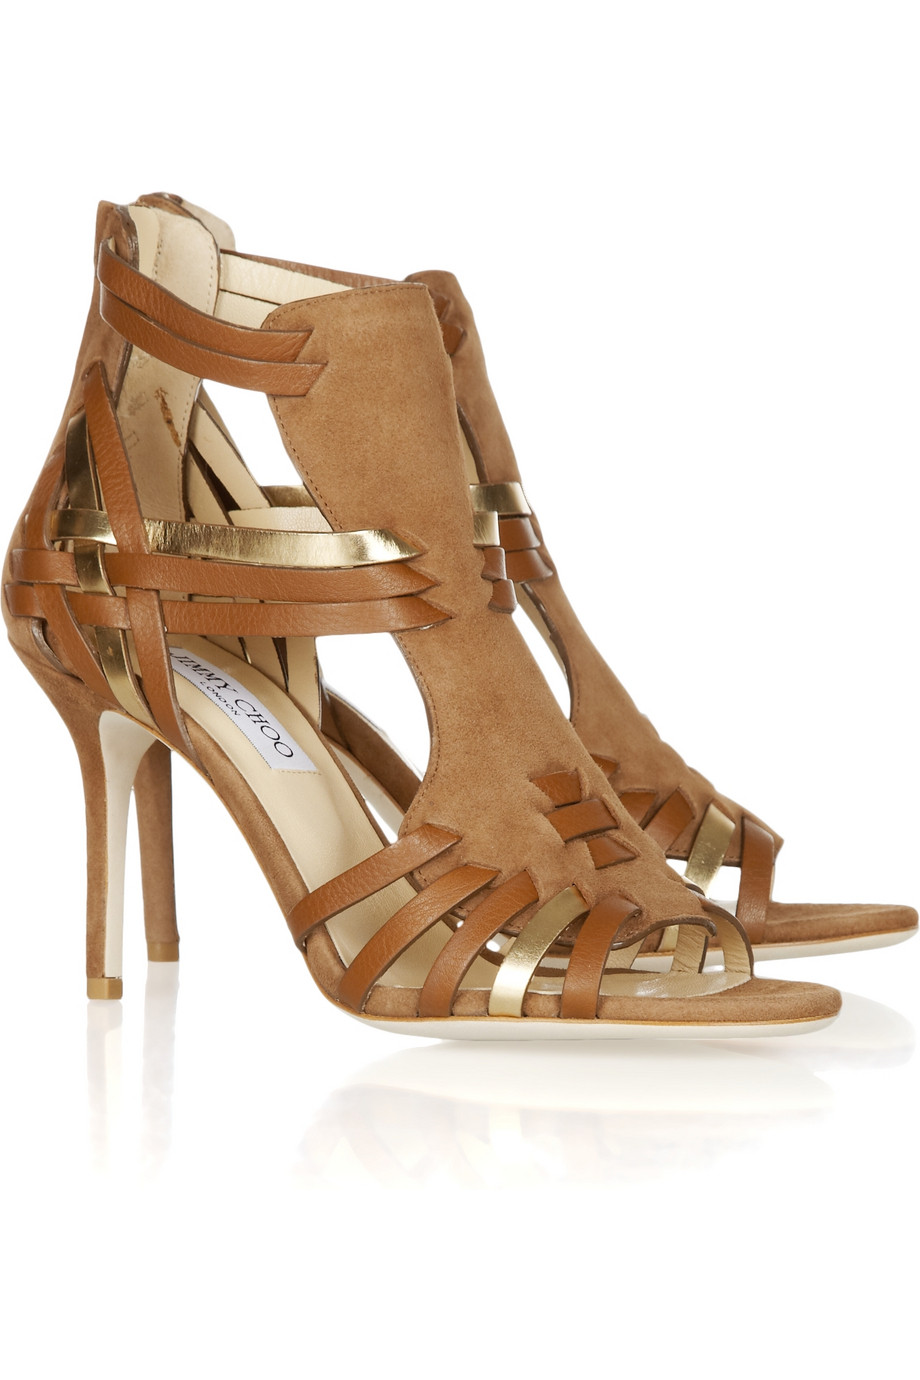 caf759970e7 Lyst - Jimmy Choo Margy Woven Leather And Suede Sandals in Brown